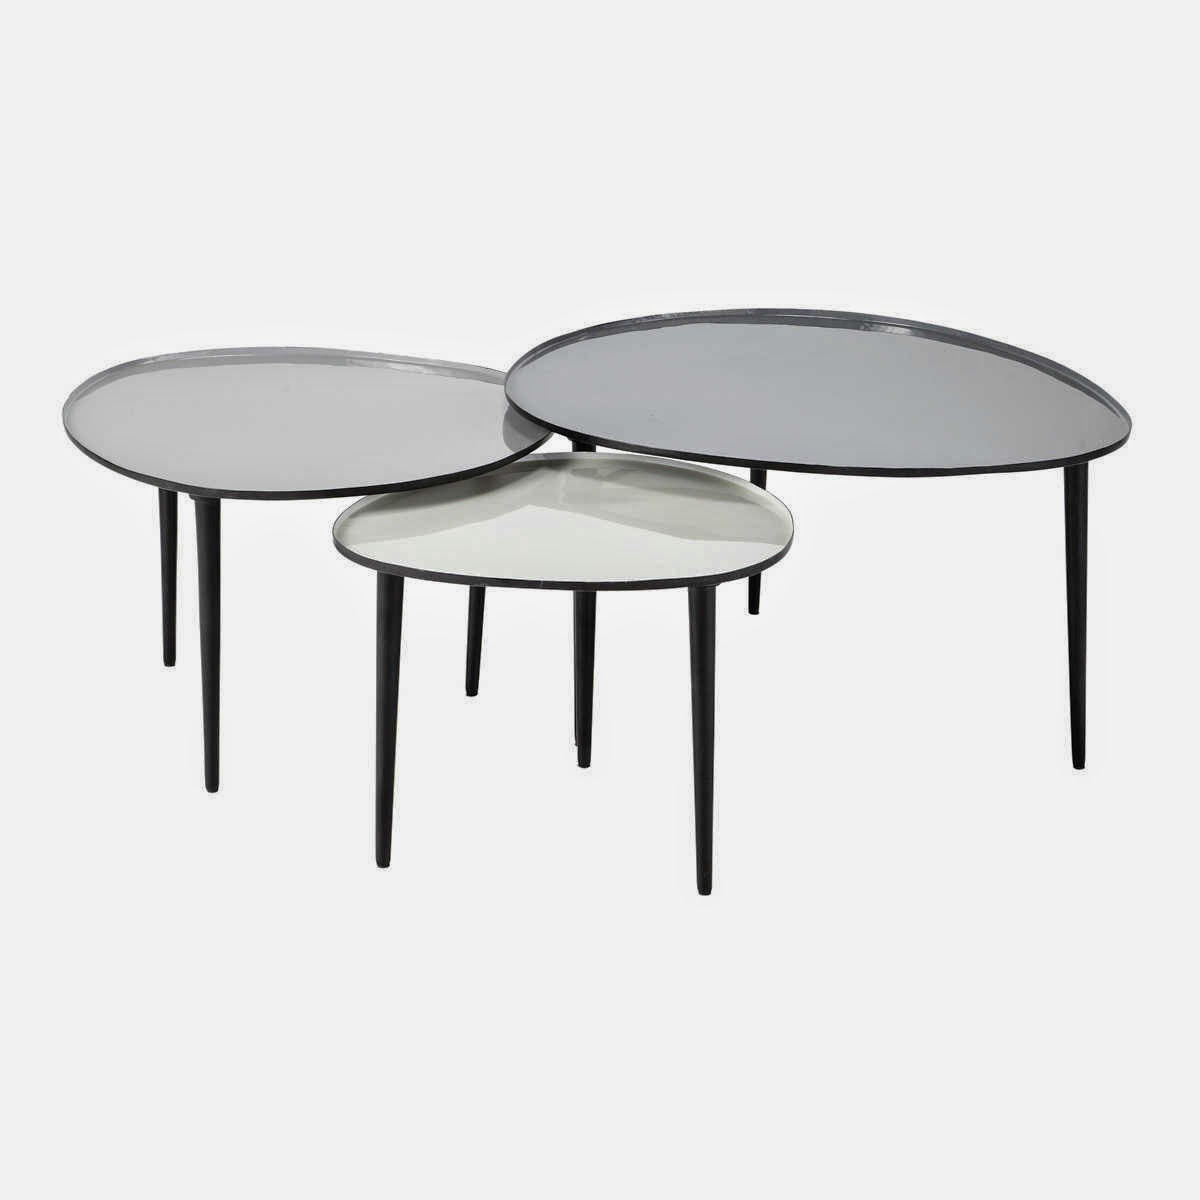 Les tables basses gigognes caract rielle - Table basse gigogne fly ...